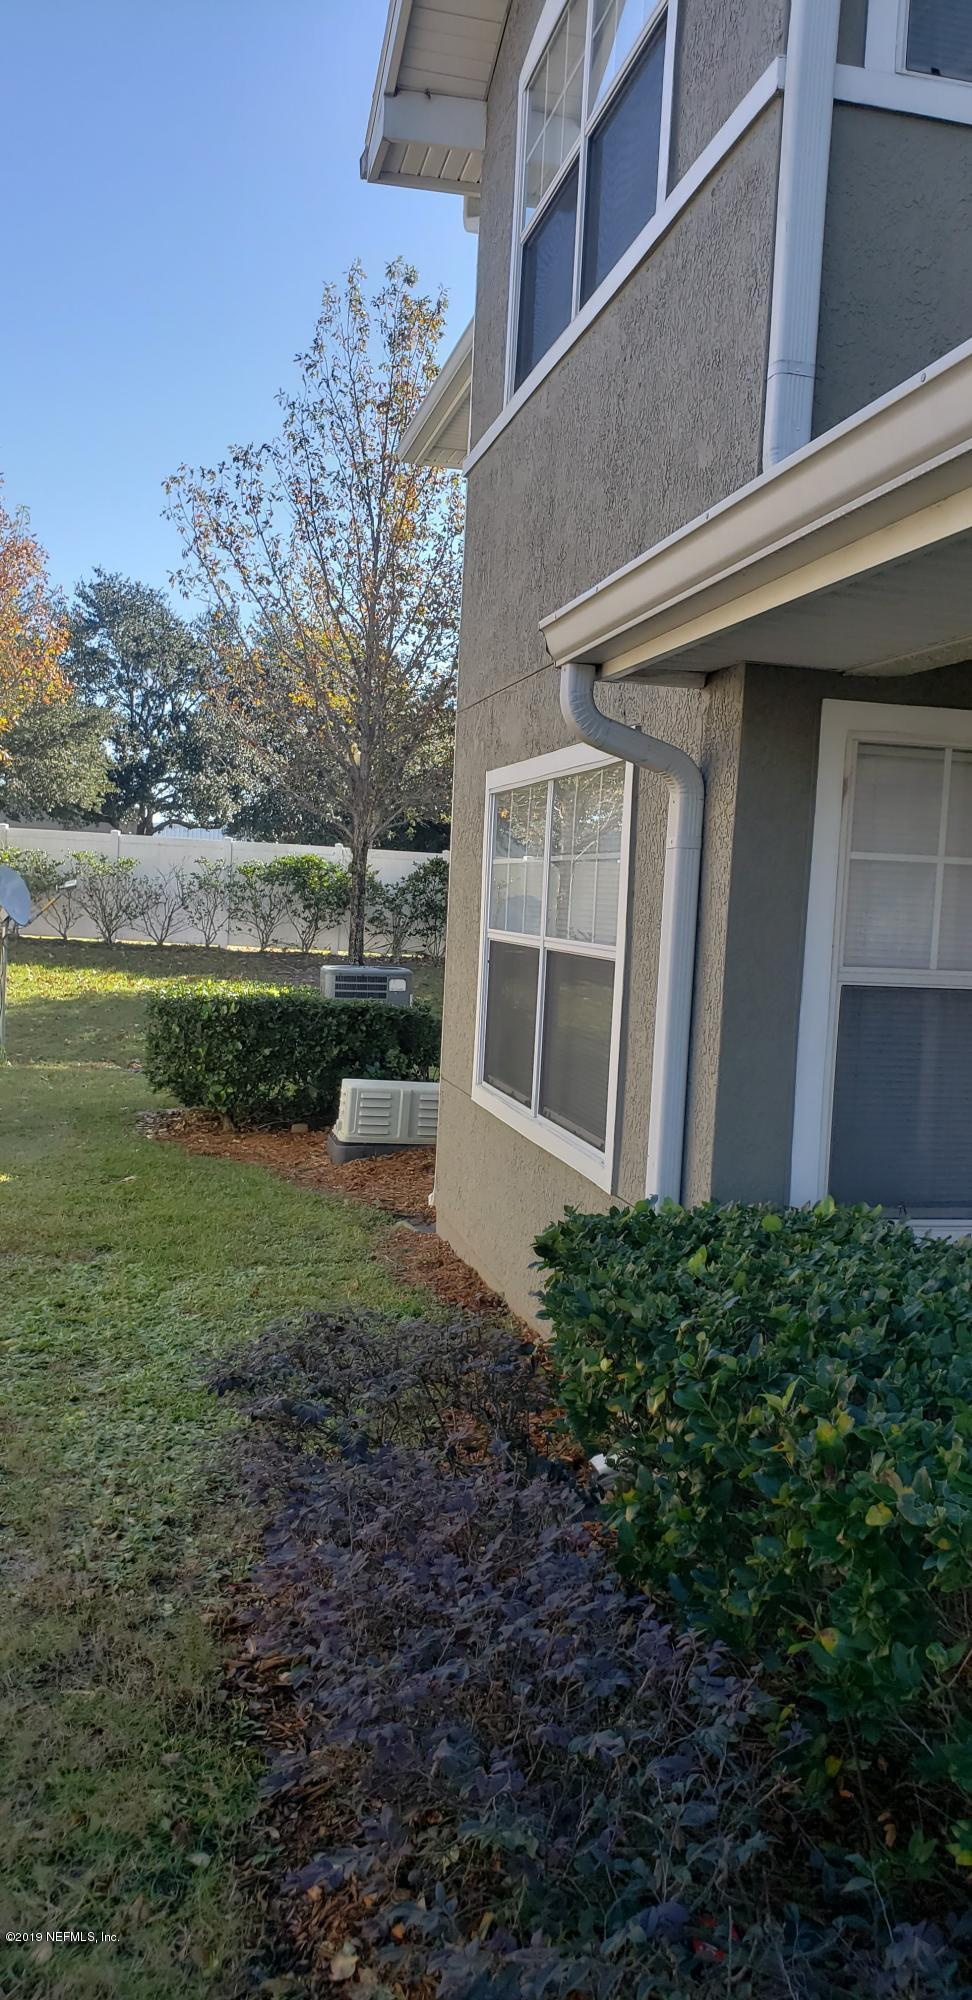 8550 ARGYLE BUSINESS, JACKSONVILLE, FLORIDA 32244, 3 Bedrooms Bedrooms, ,2 BathroomsBathrooms,Residential - condos/townhomes,For sale,ARGYLE BUSINESS,974126